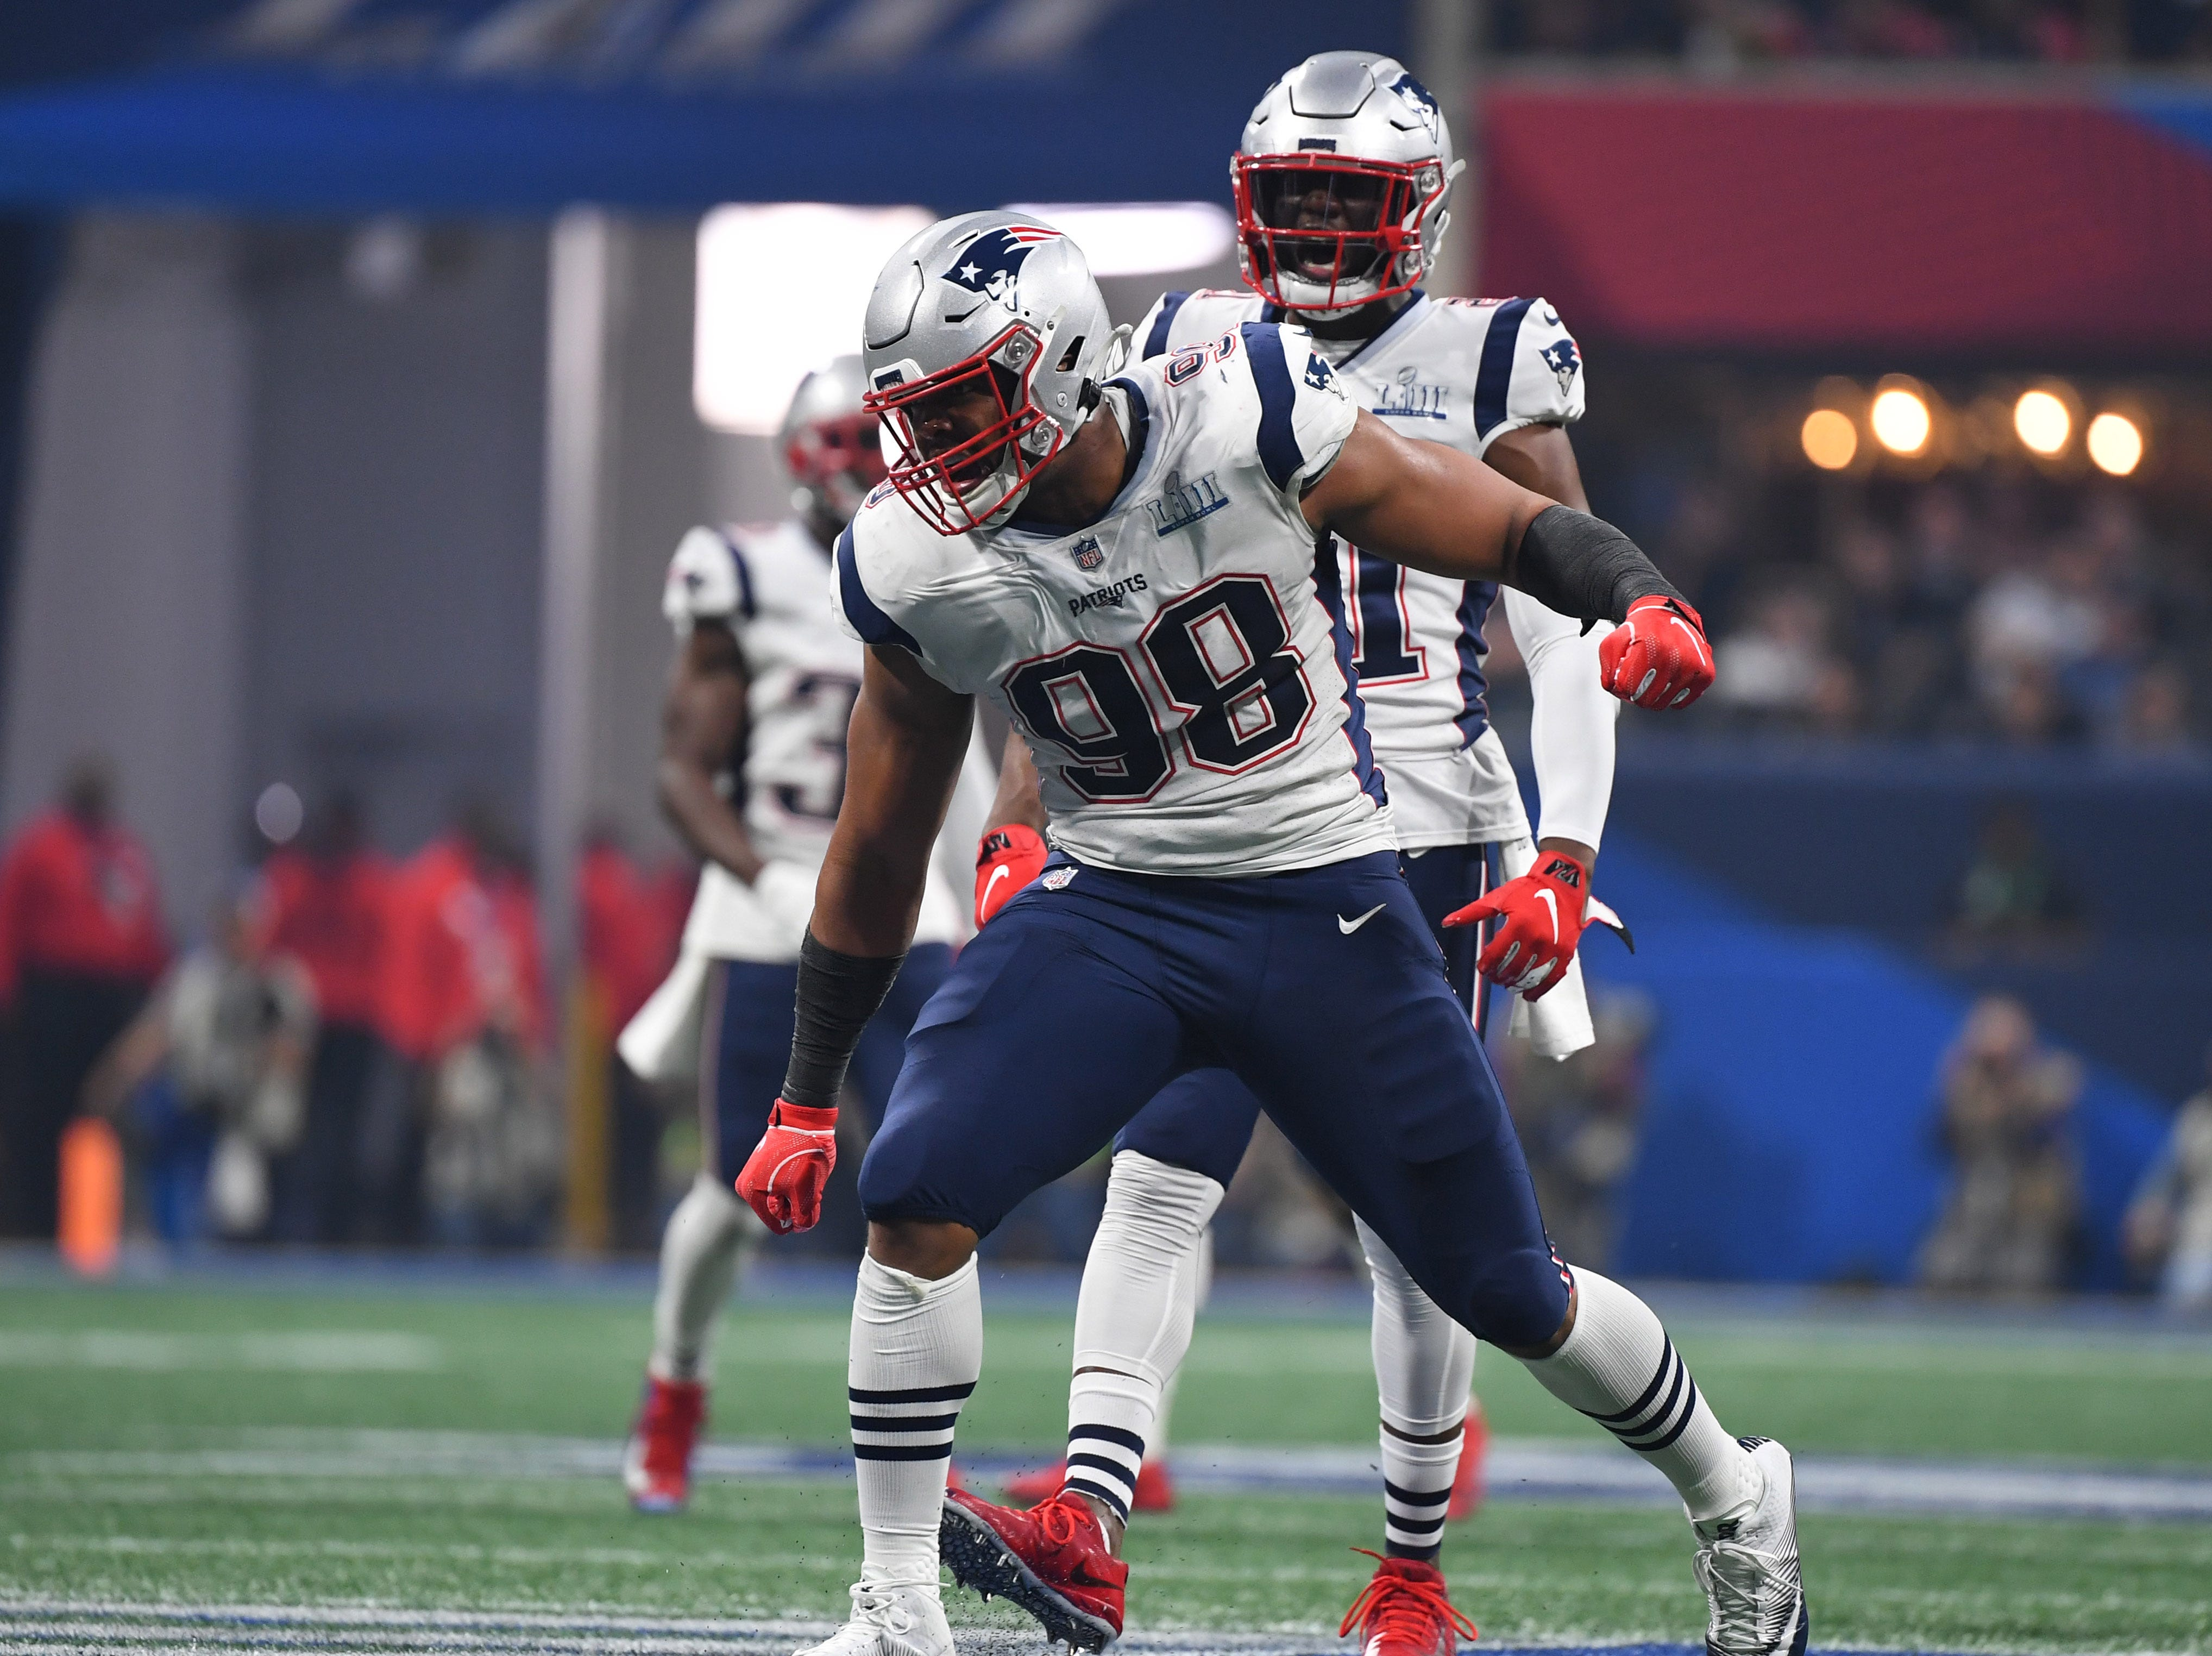 2. Trey Flowers, DE, Patriots: Agreed to deal with Lions